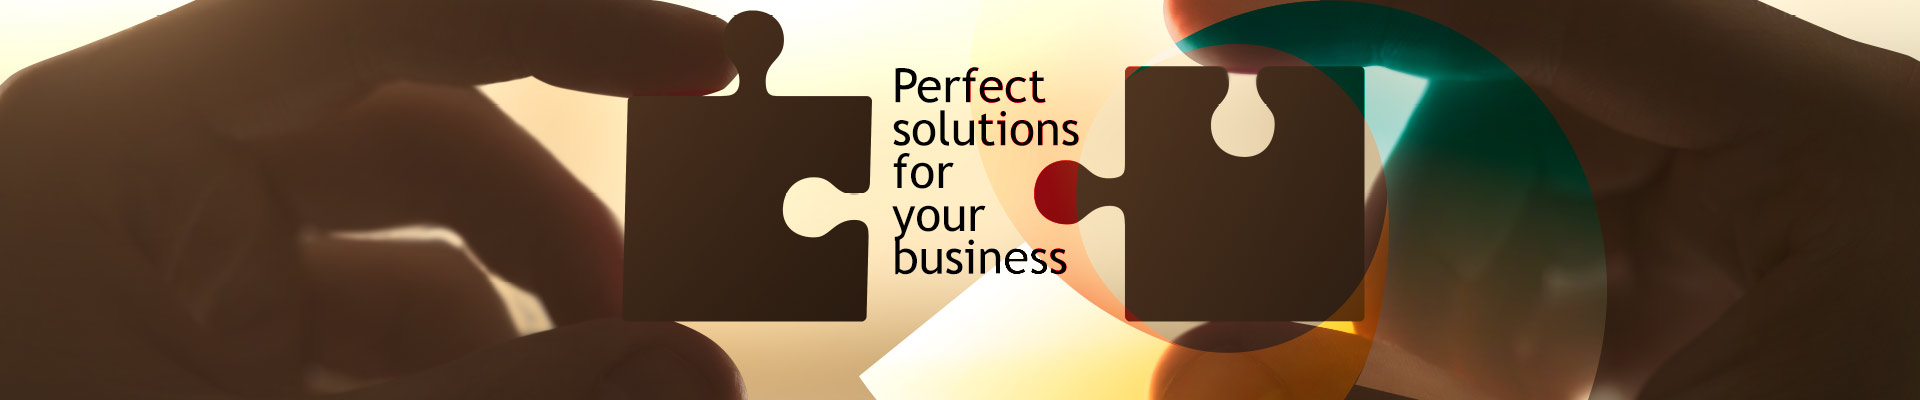 Perfect-solutions-for-your-business